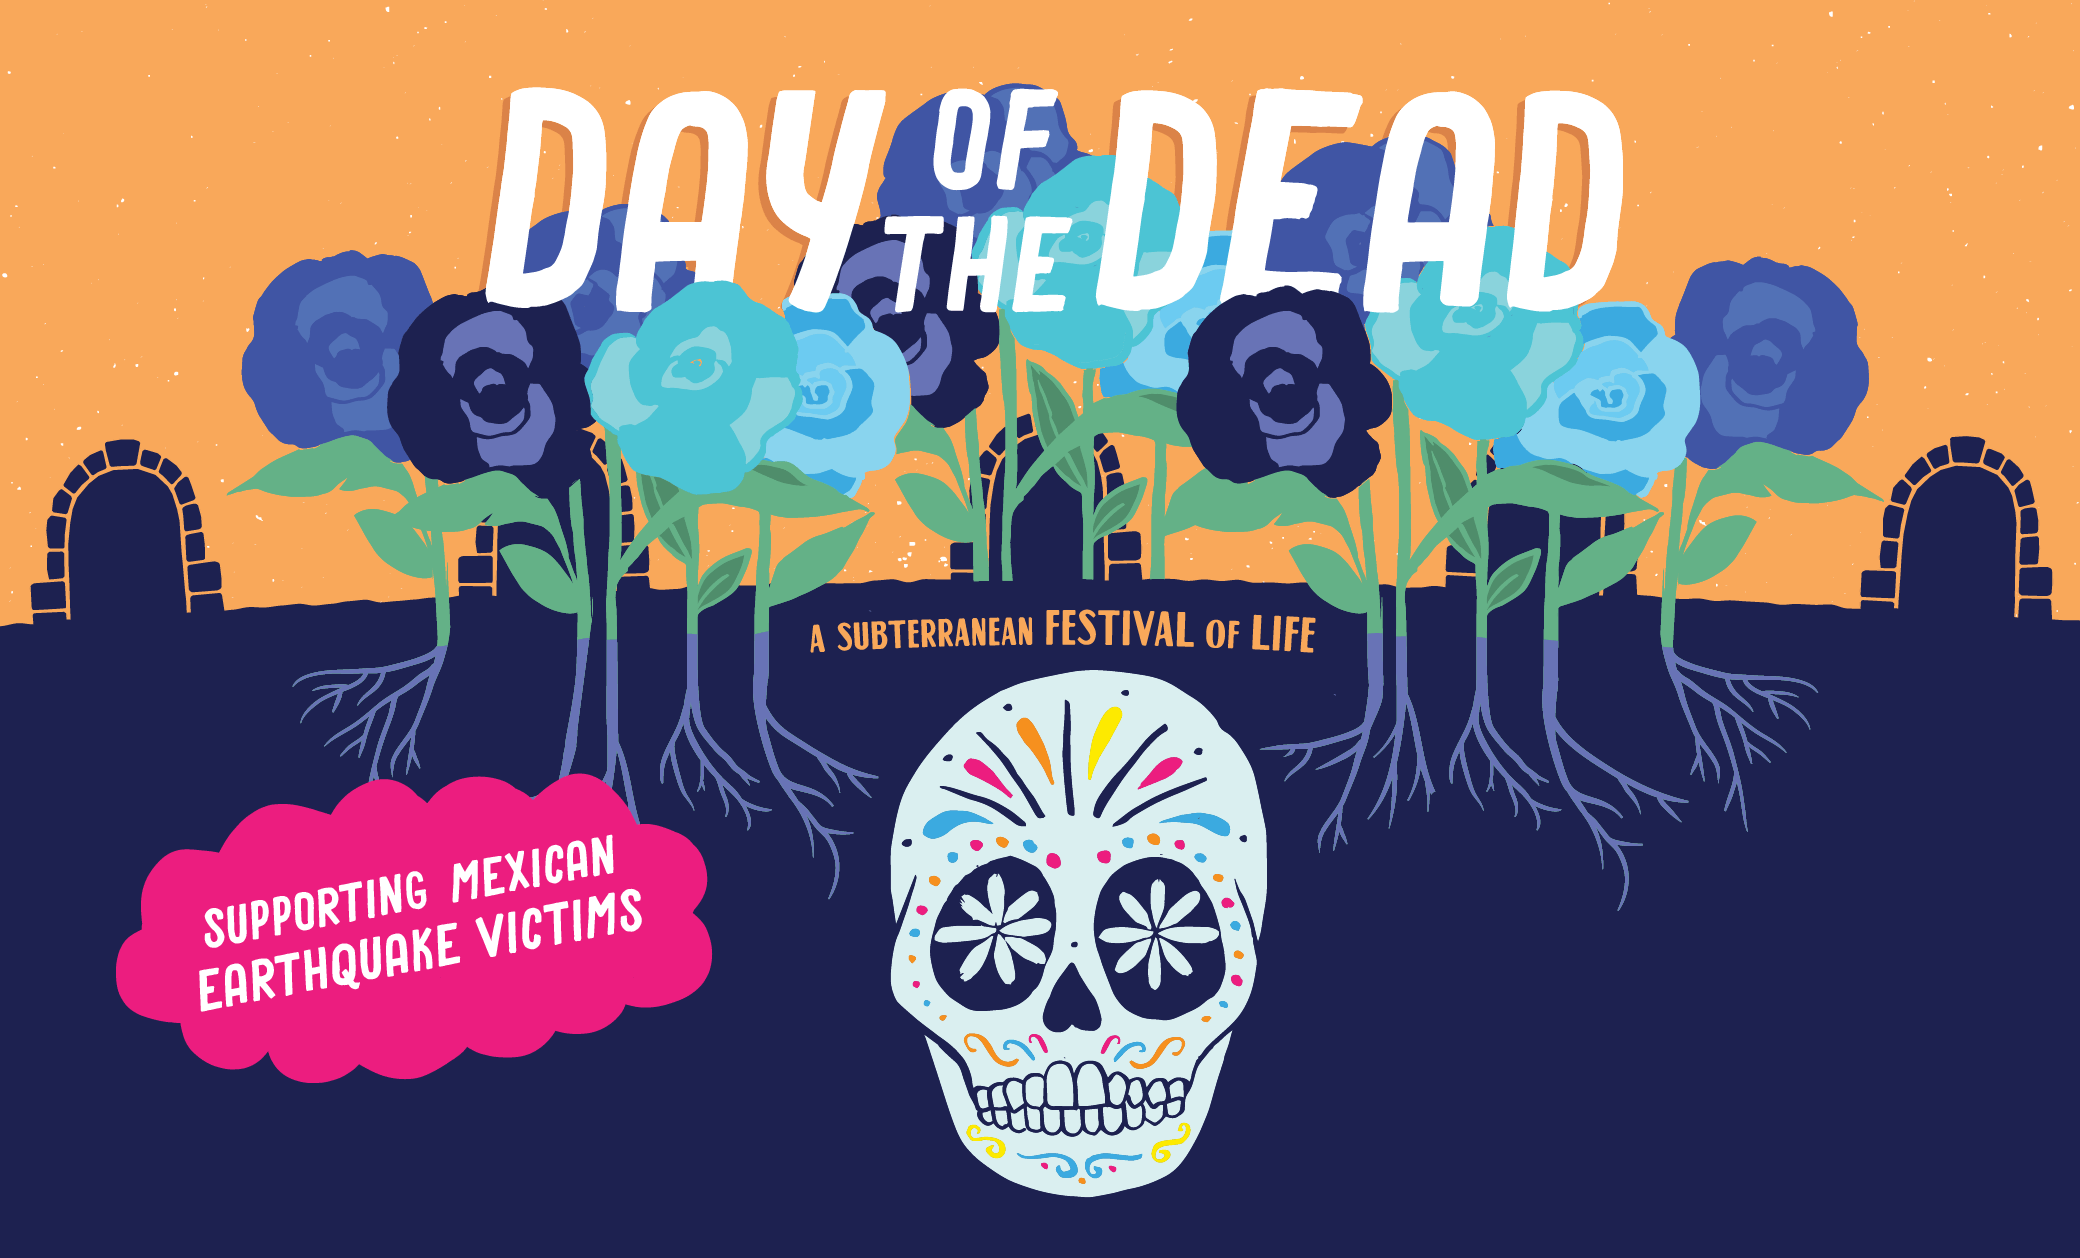 day of ddead